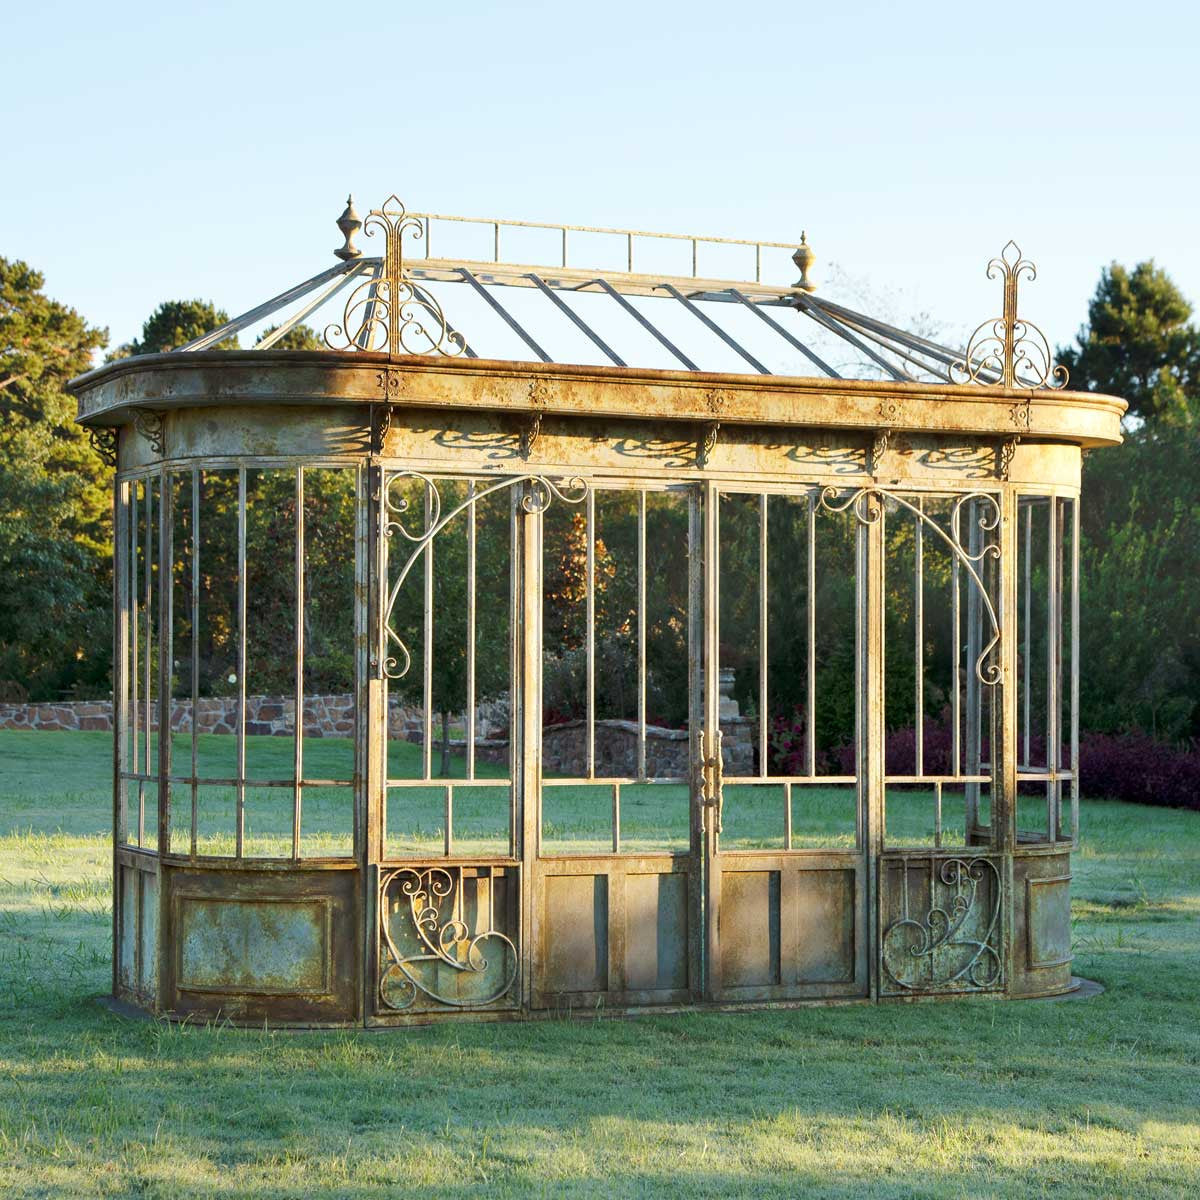 Lovecup Aged Metal Conservatory Facade Framework L861